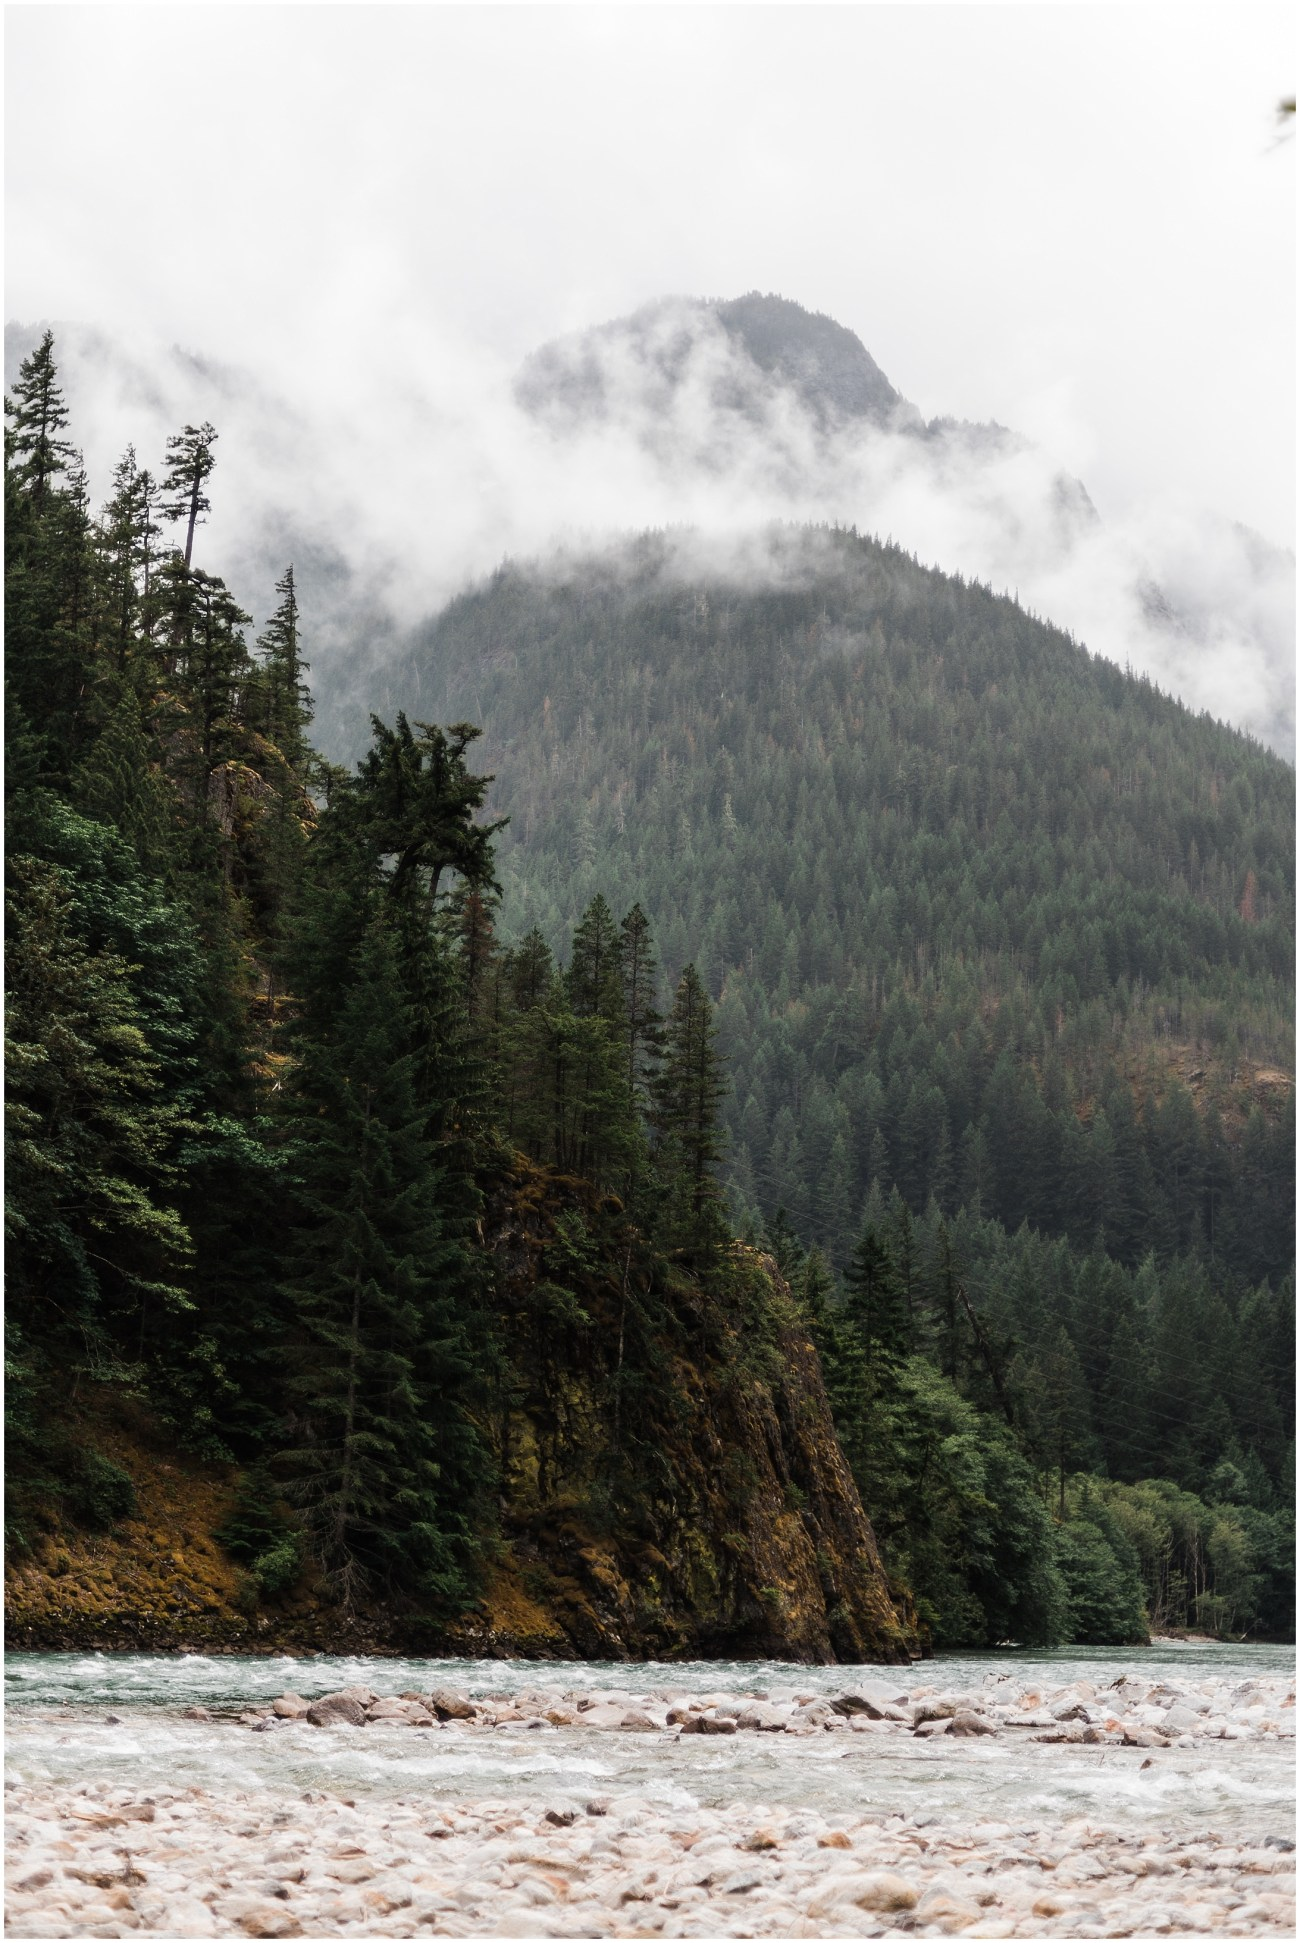 River and Mountain Landscape in North Cascades National Park